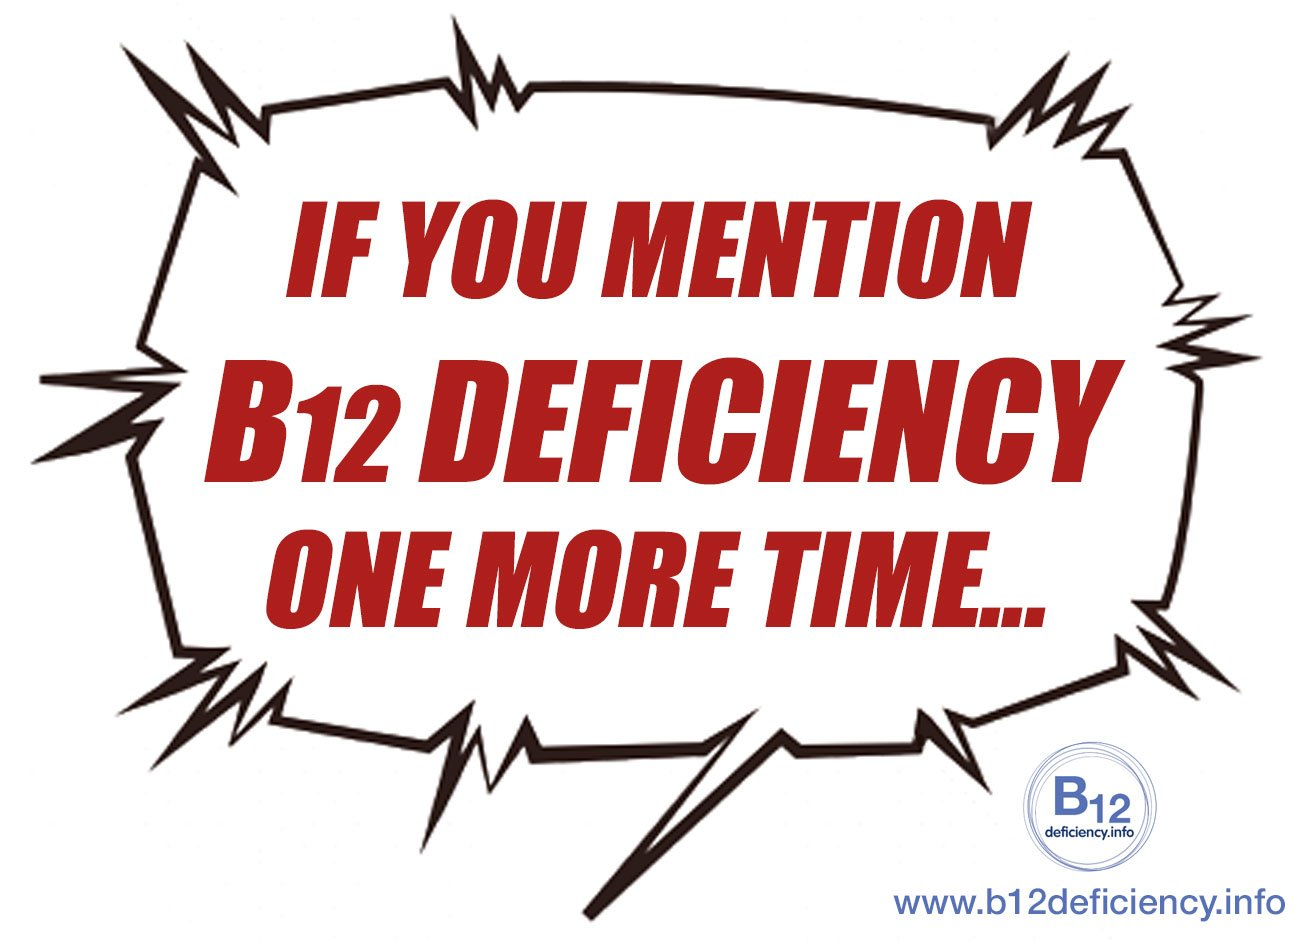 Have you been told to shut up about B12 deficiency?